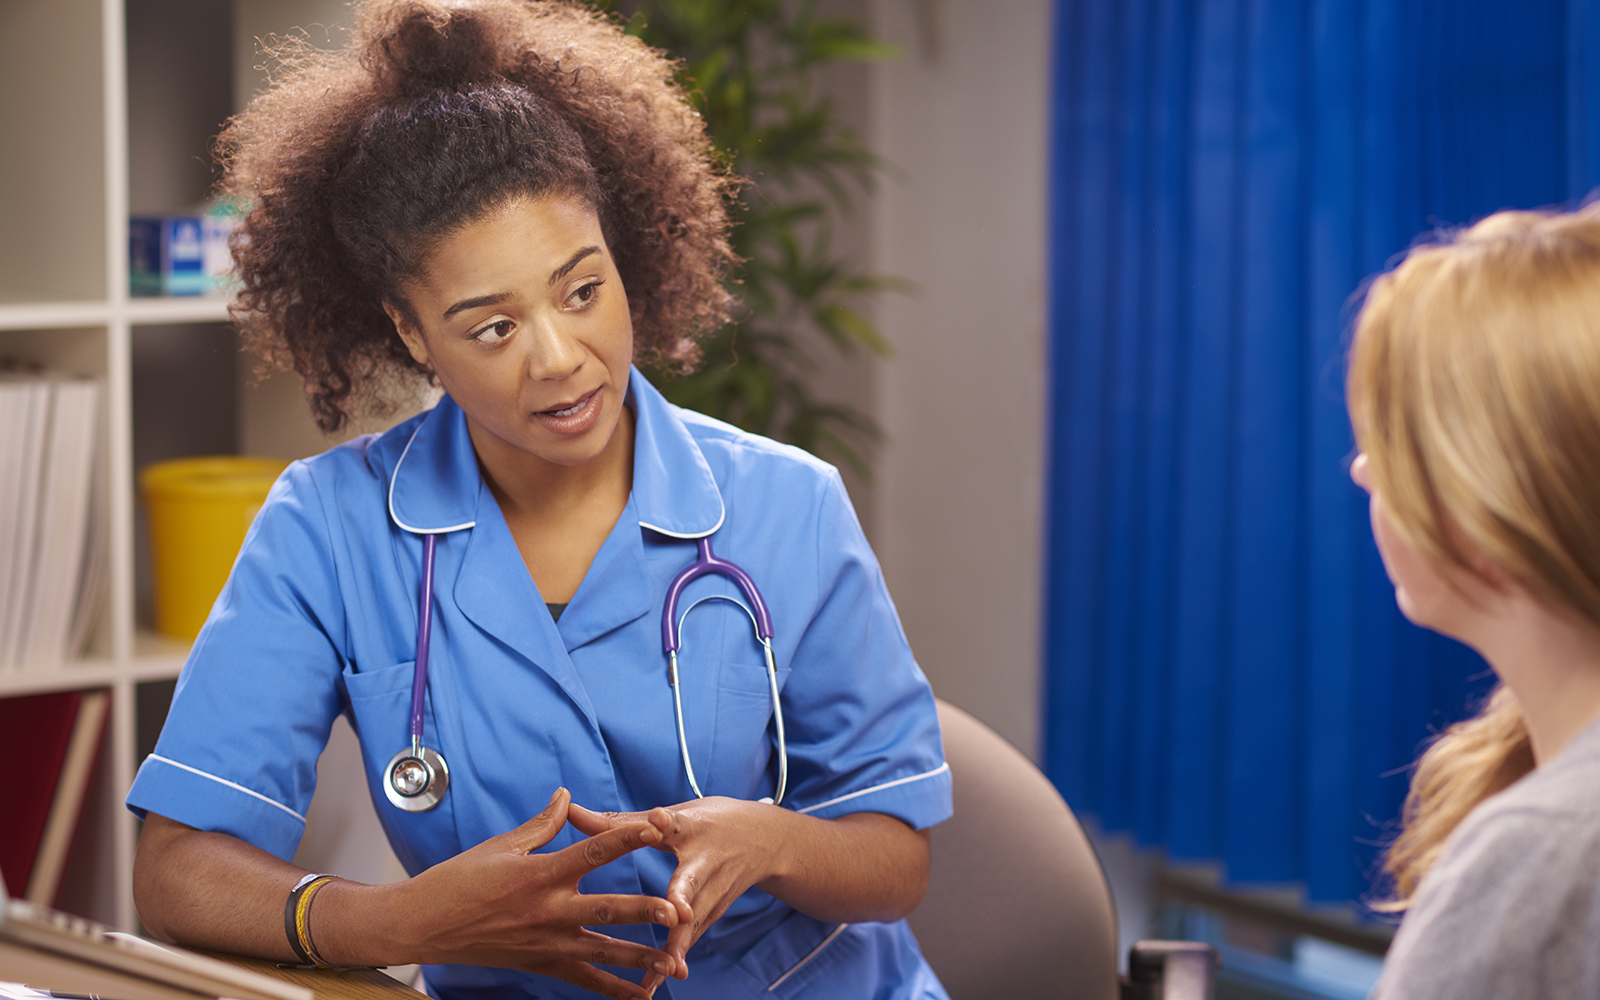 An African-American clinician explains medical terms to a white female patient.